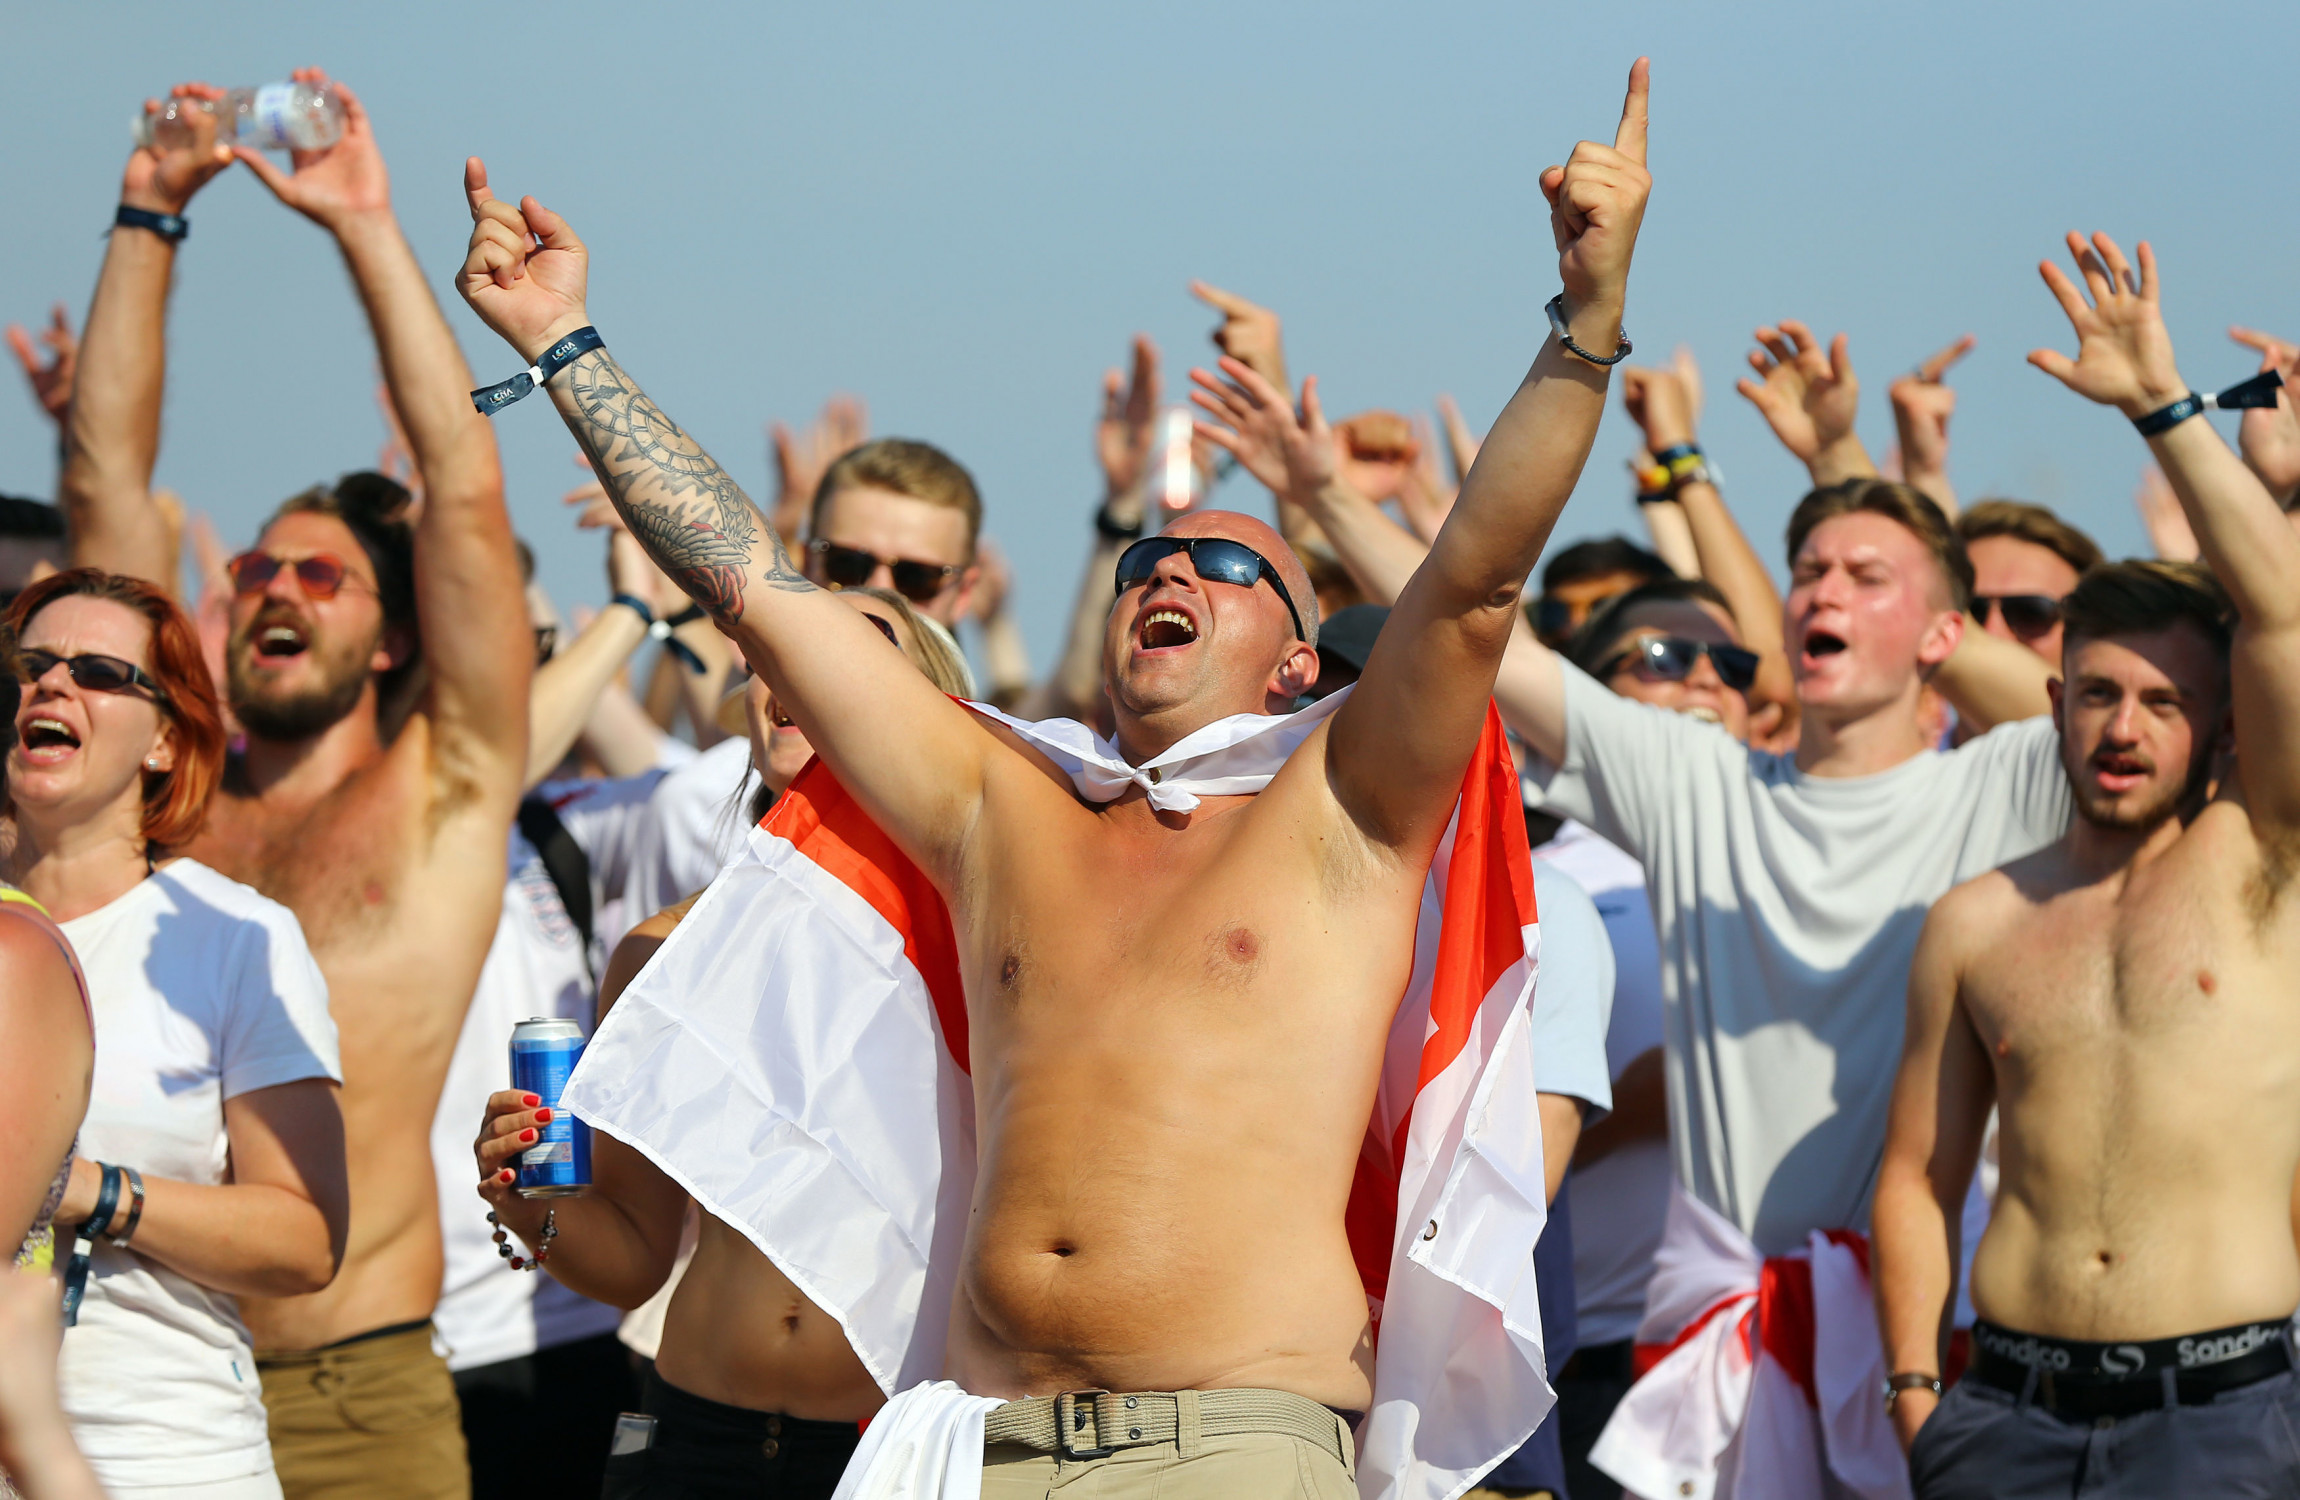 England supporters send gallons of beer into the air celebrating goal forecasting